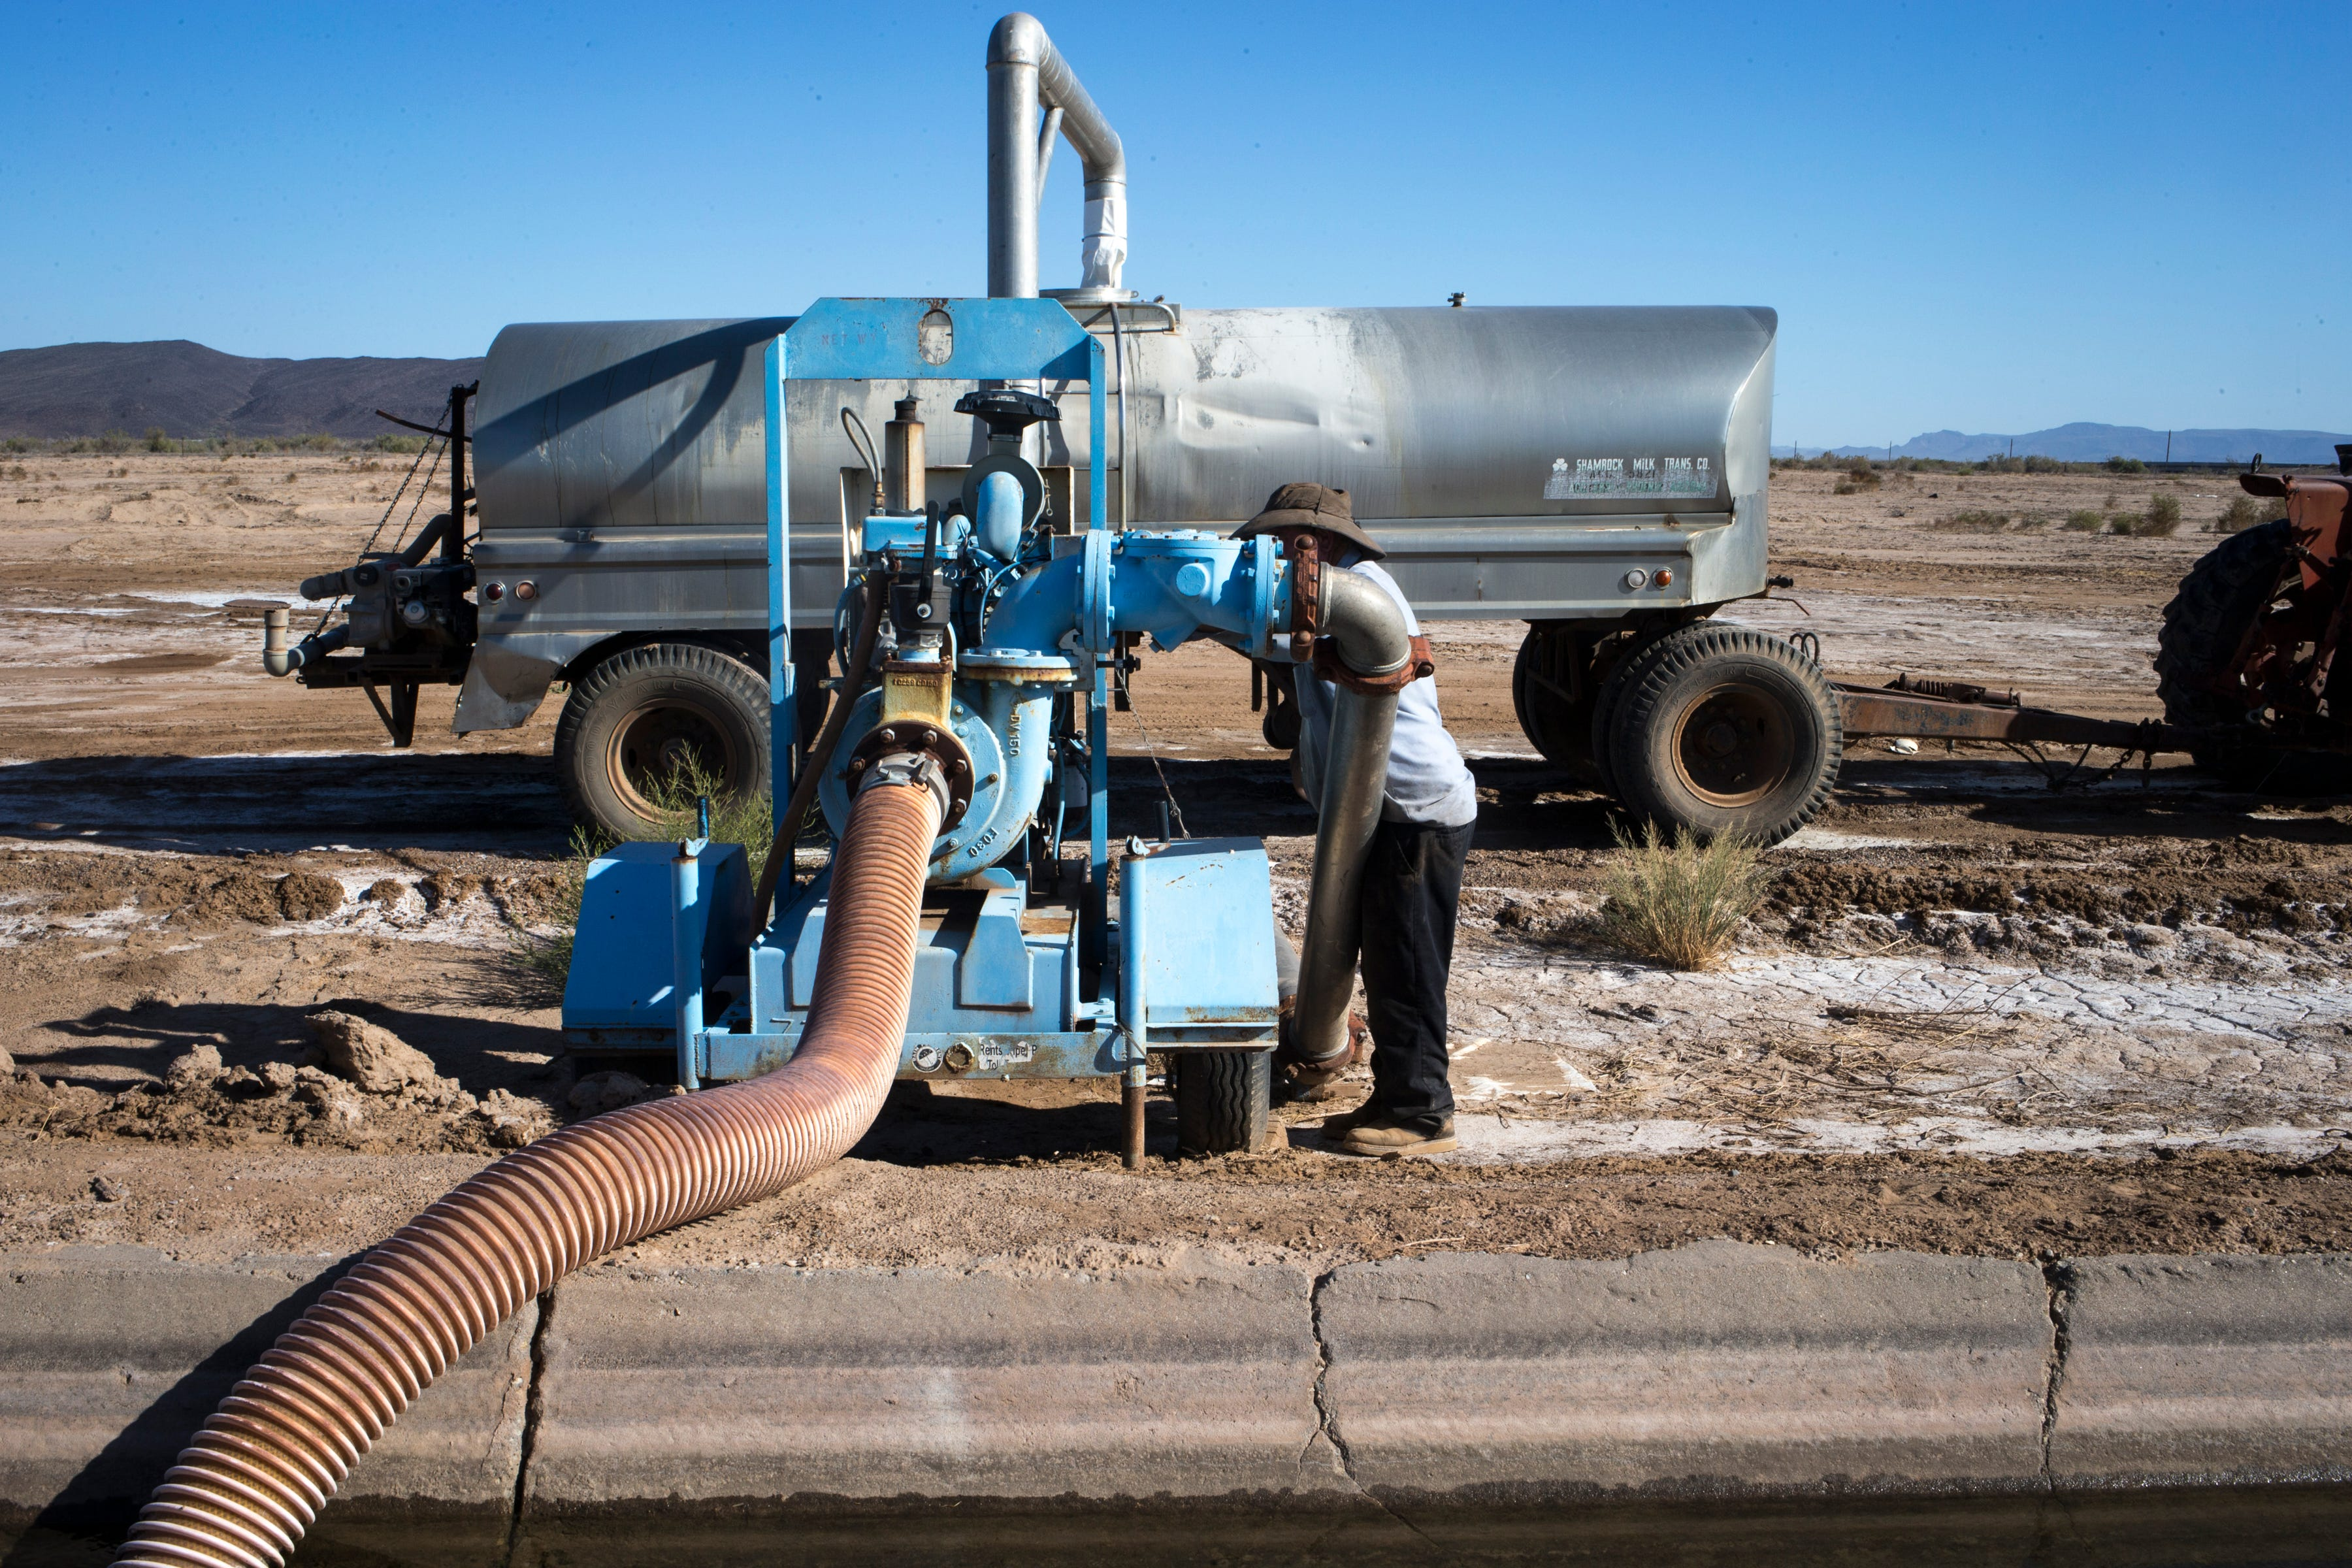 Mark Skousen fills his 3,500-gallon water tank, September 12, 2019, at his farm in Hyder, Arizona. Skousen was watering a road for dust control.